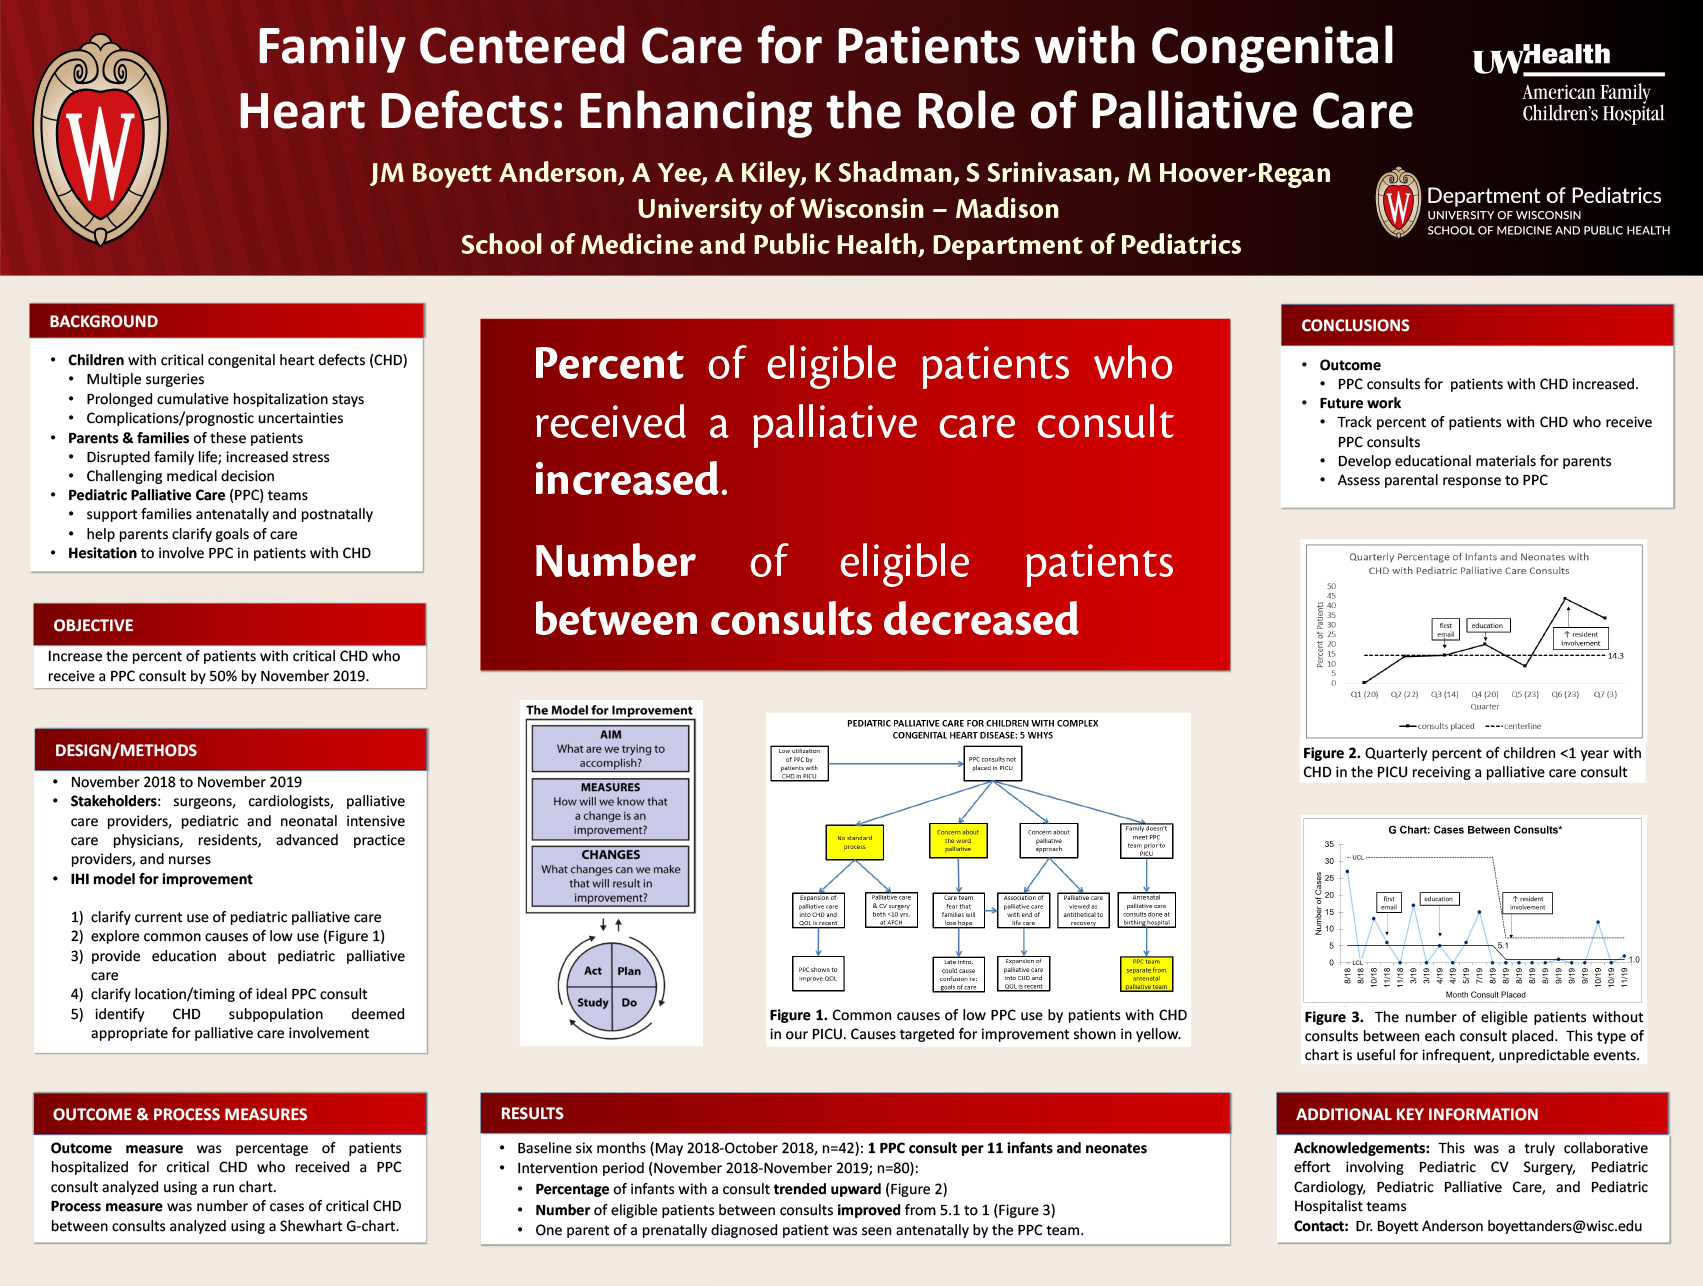 Family centered care for patients with congenital heart defects: enhancing the role of palliative care poster image